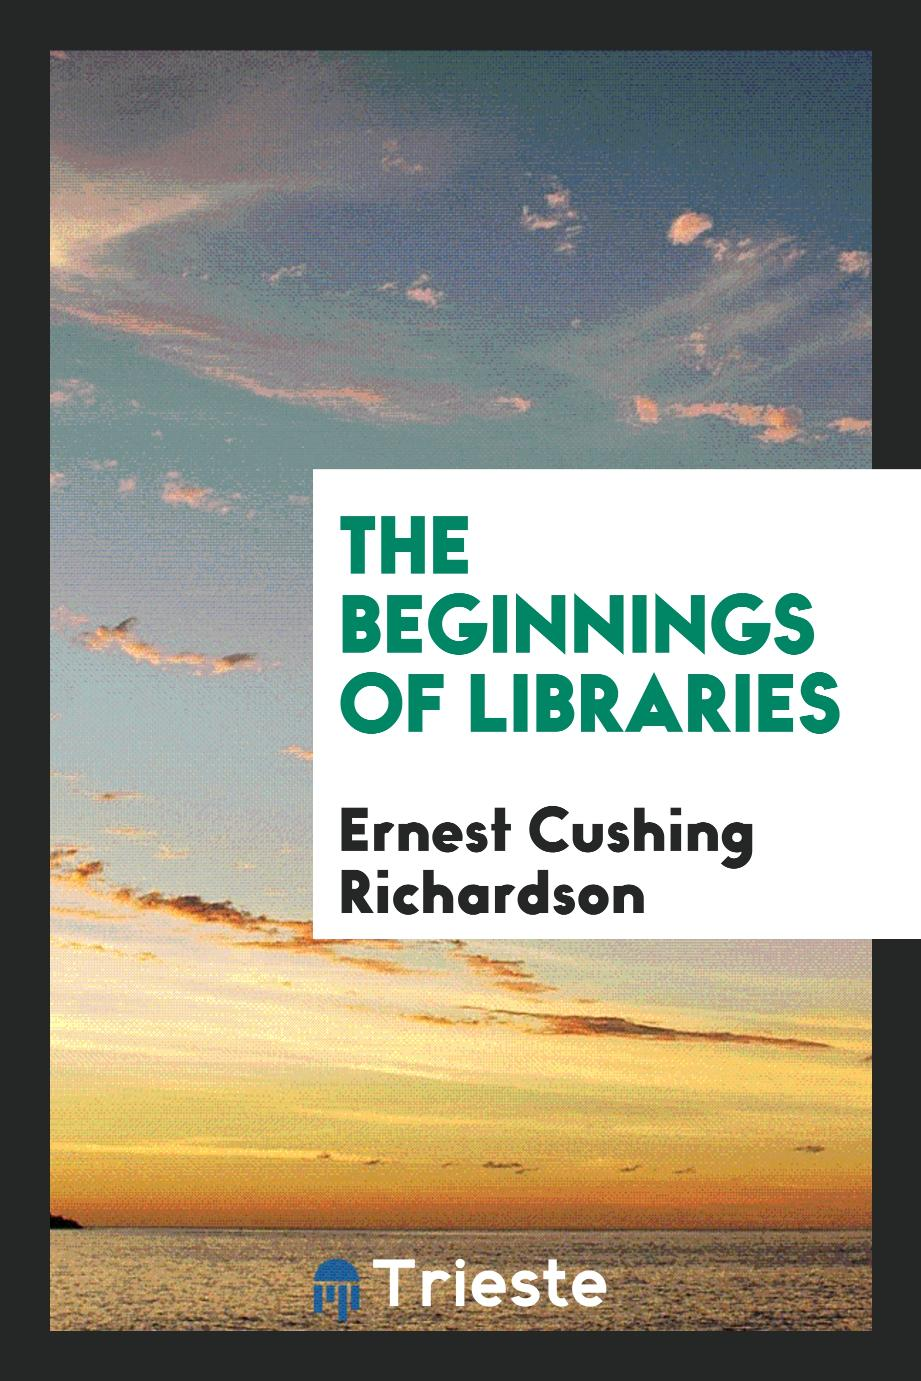 The Beginnings of Libraries